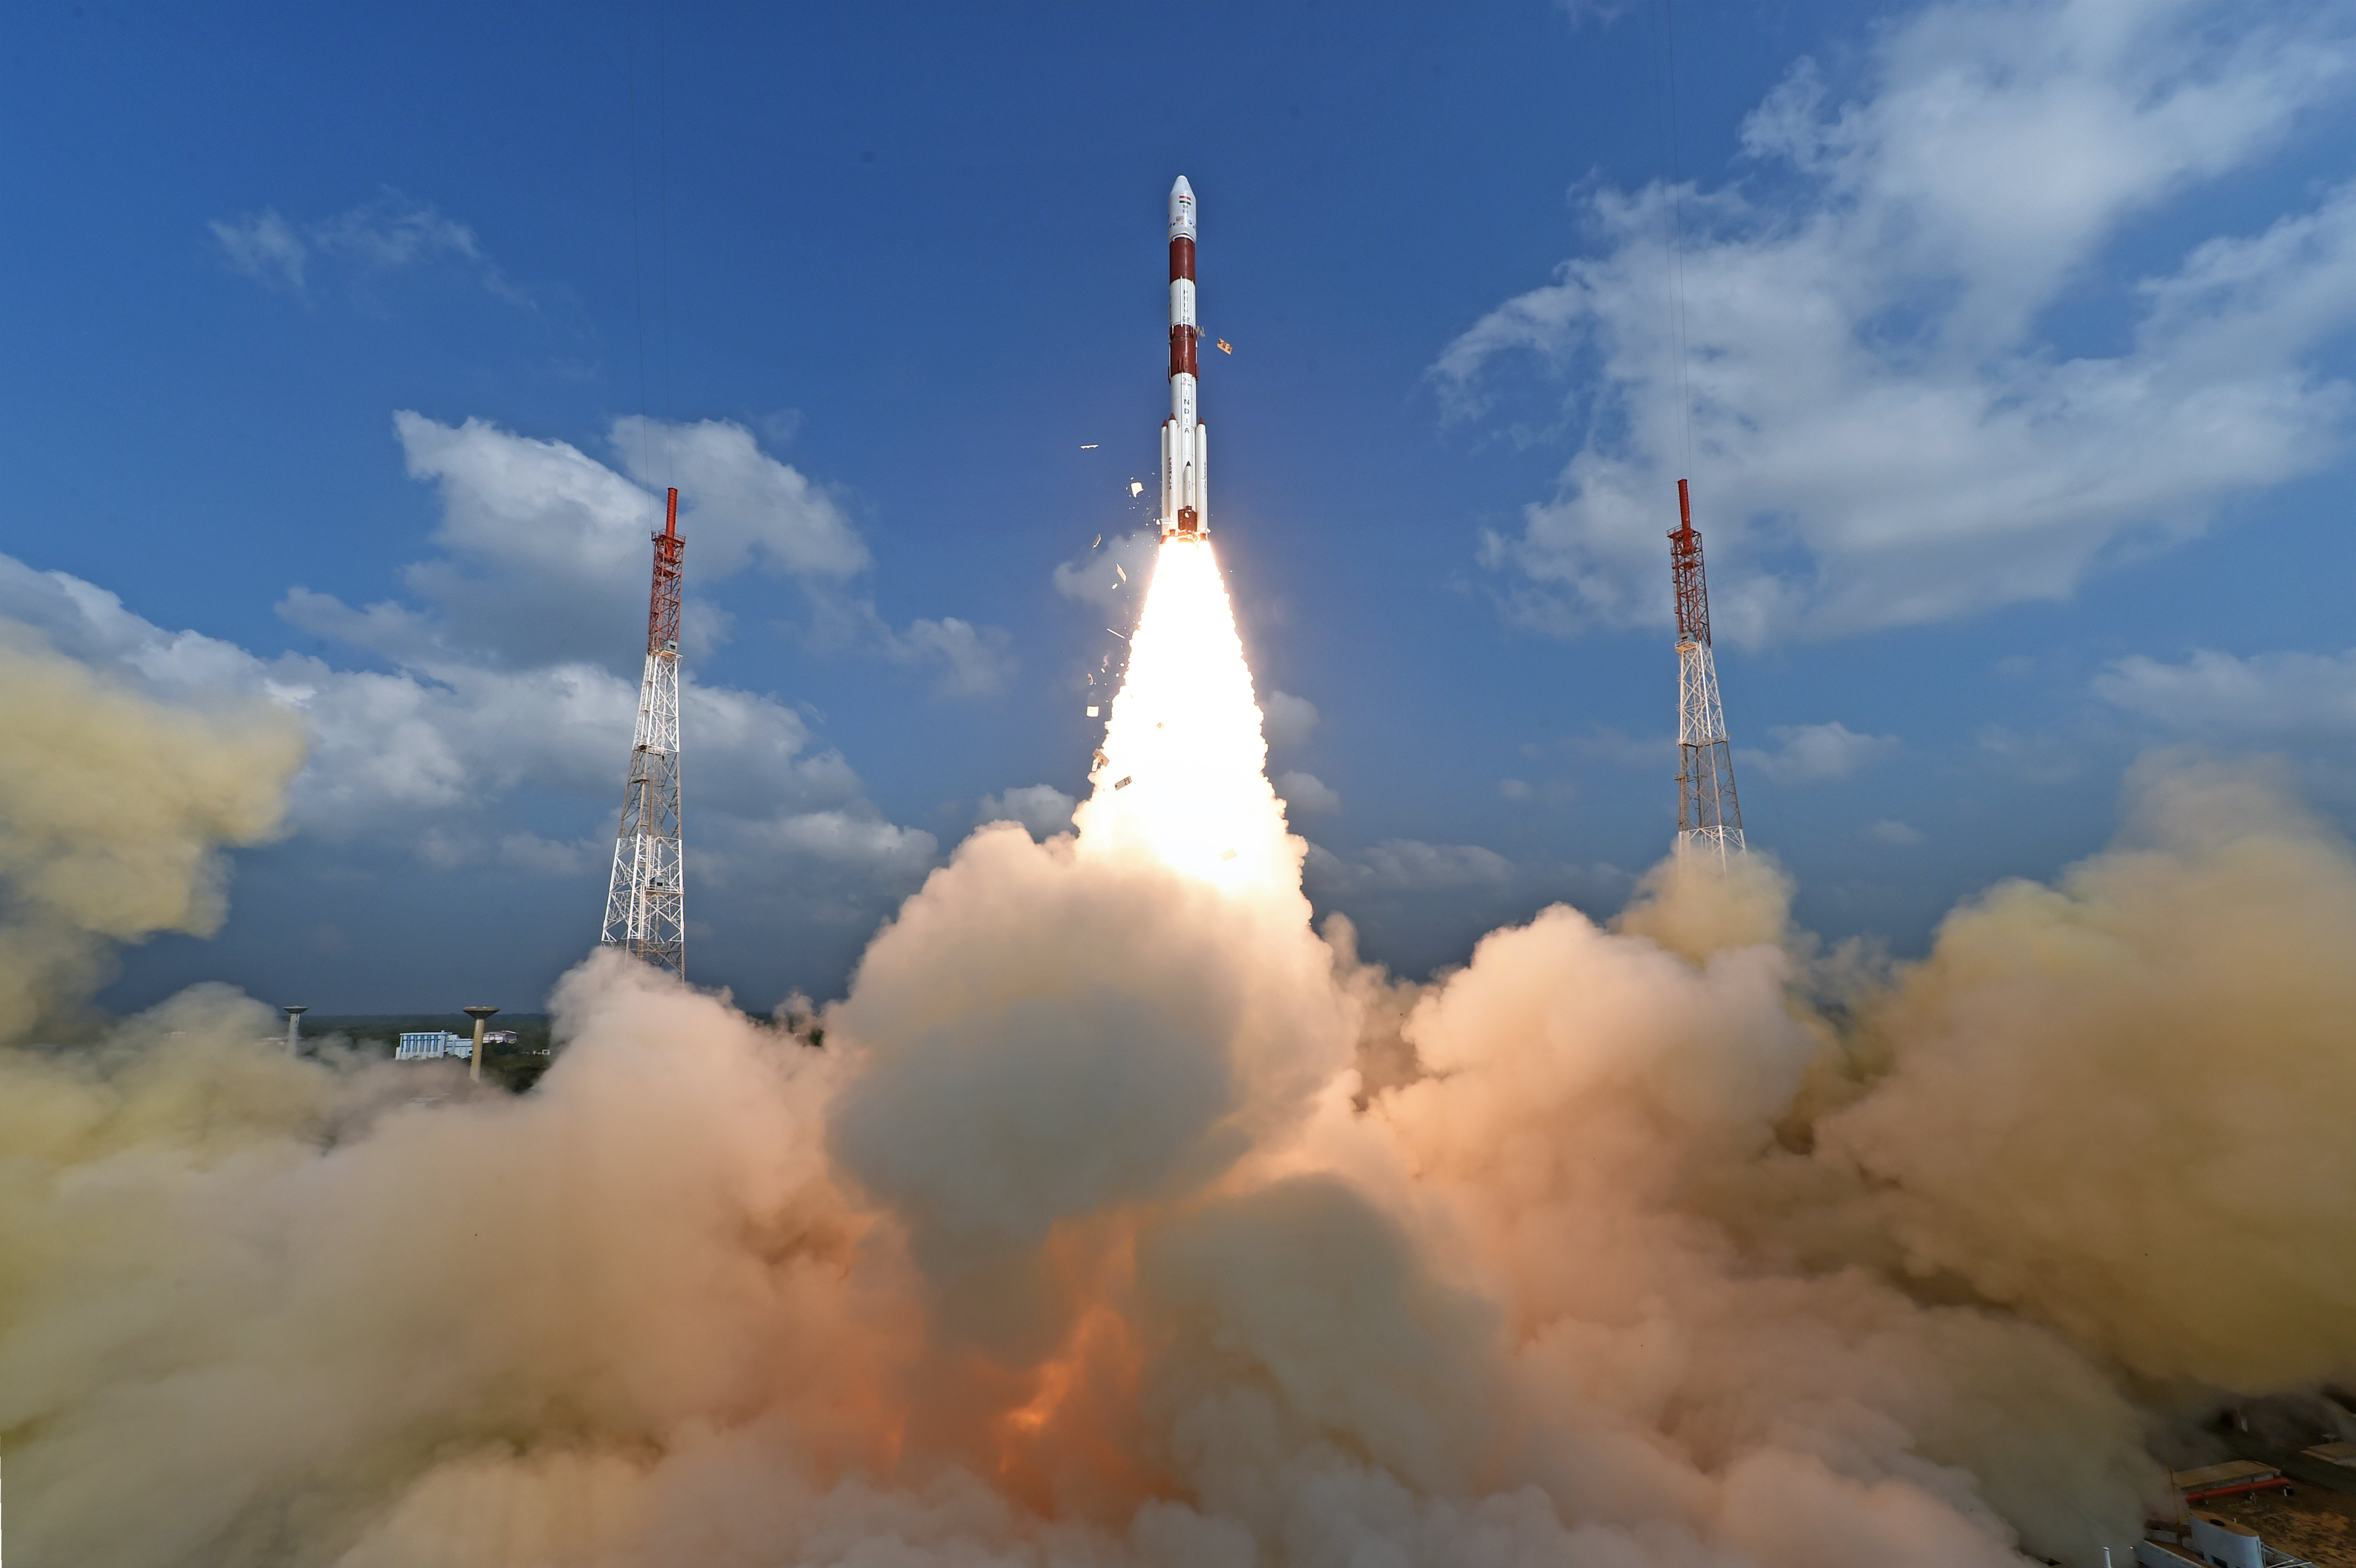 ISRO launched its 100th successful satellite